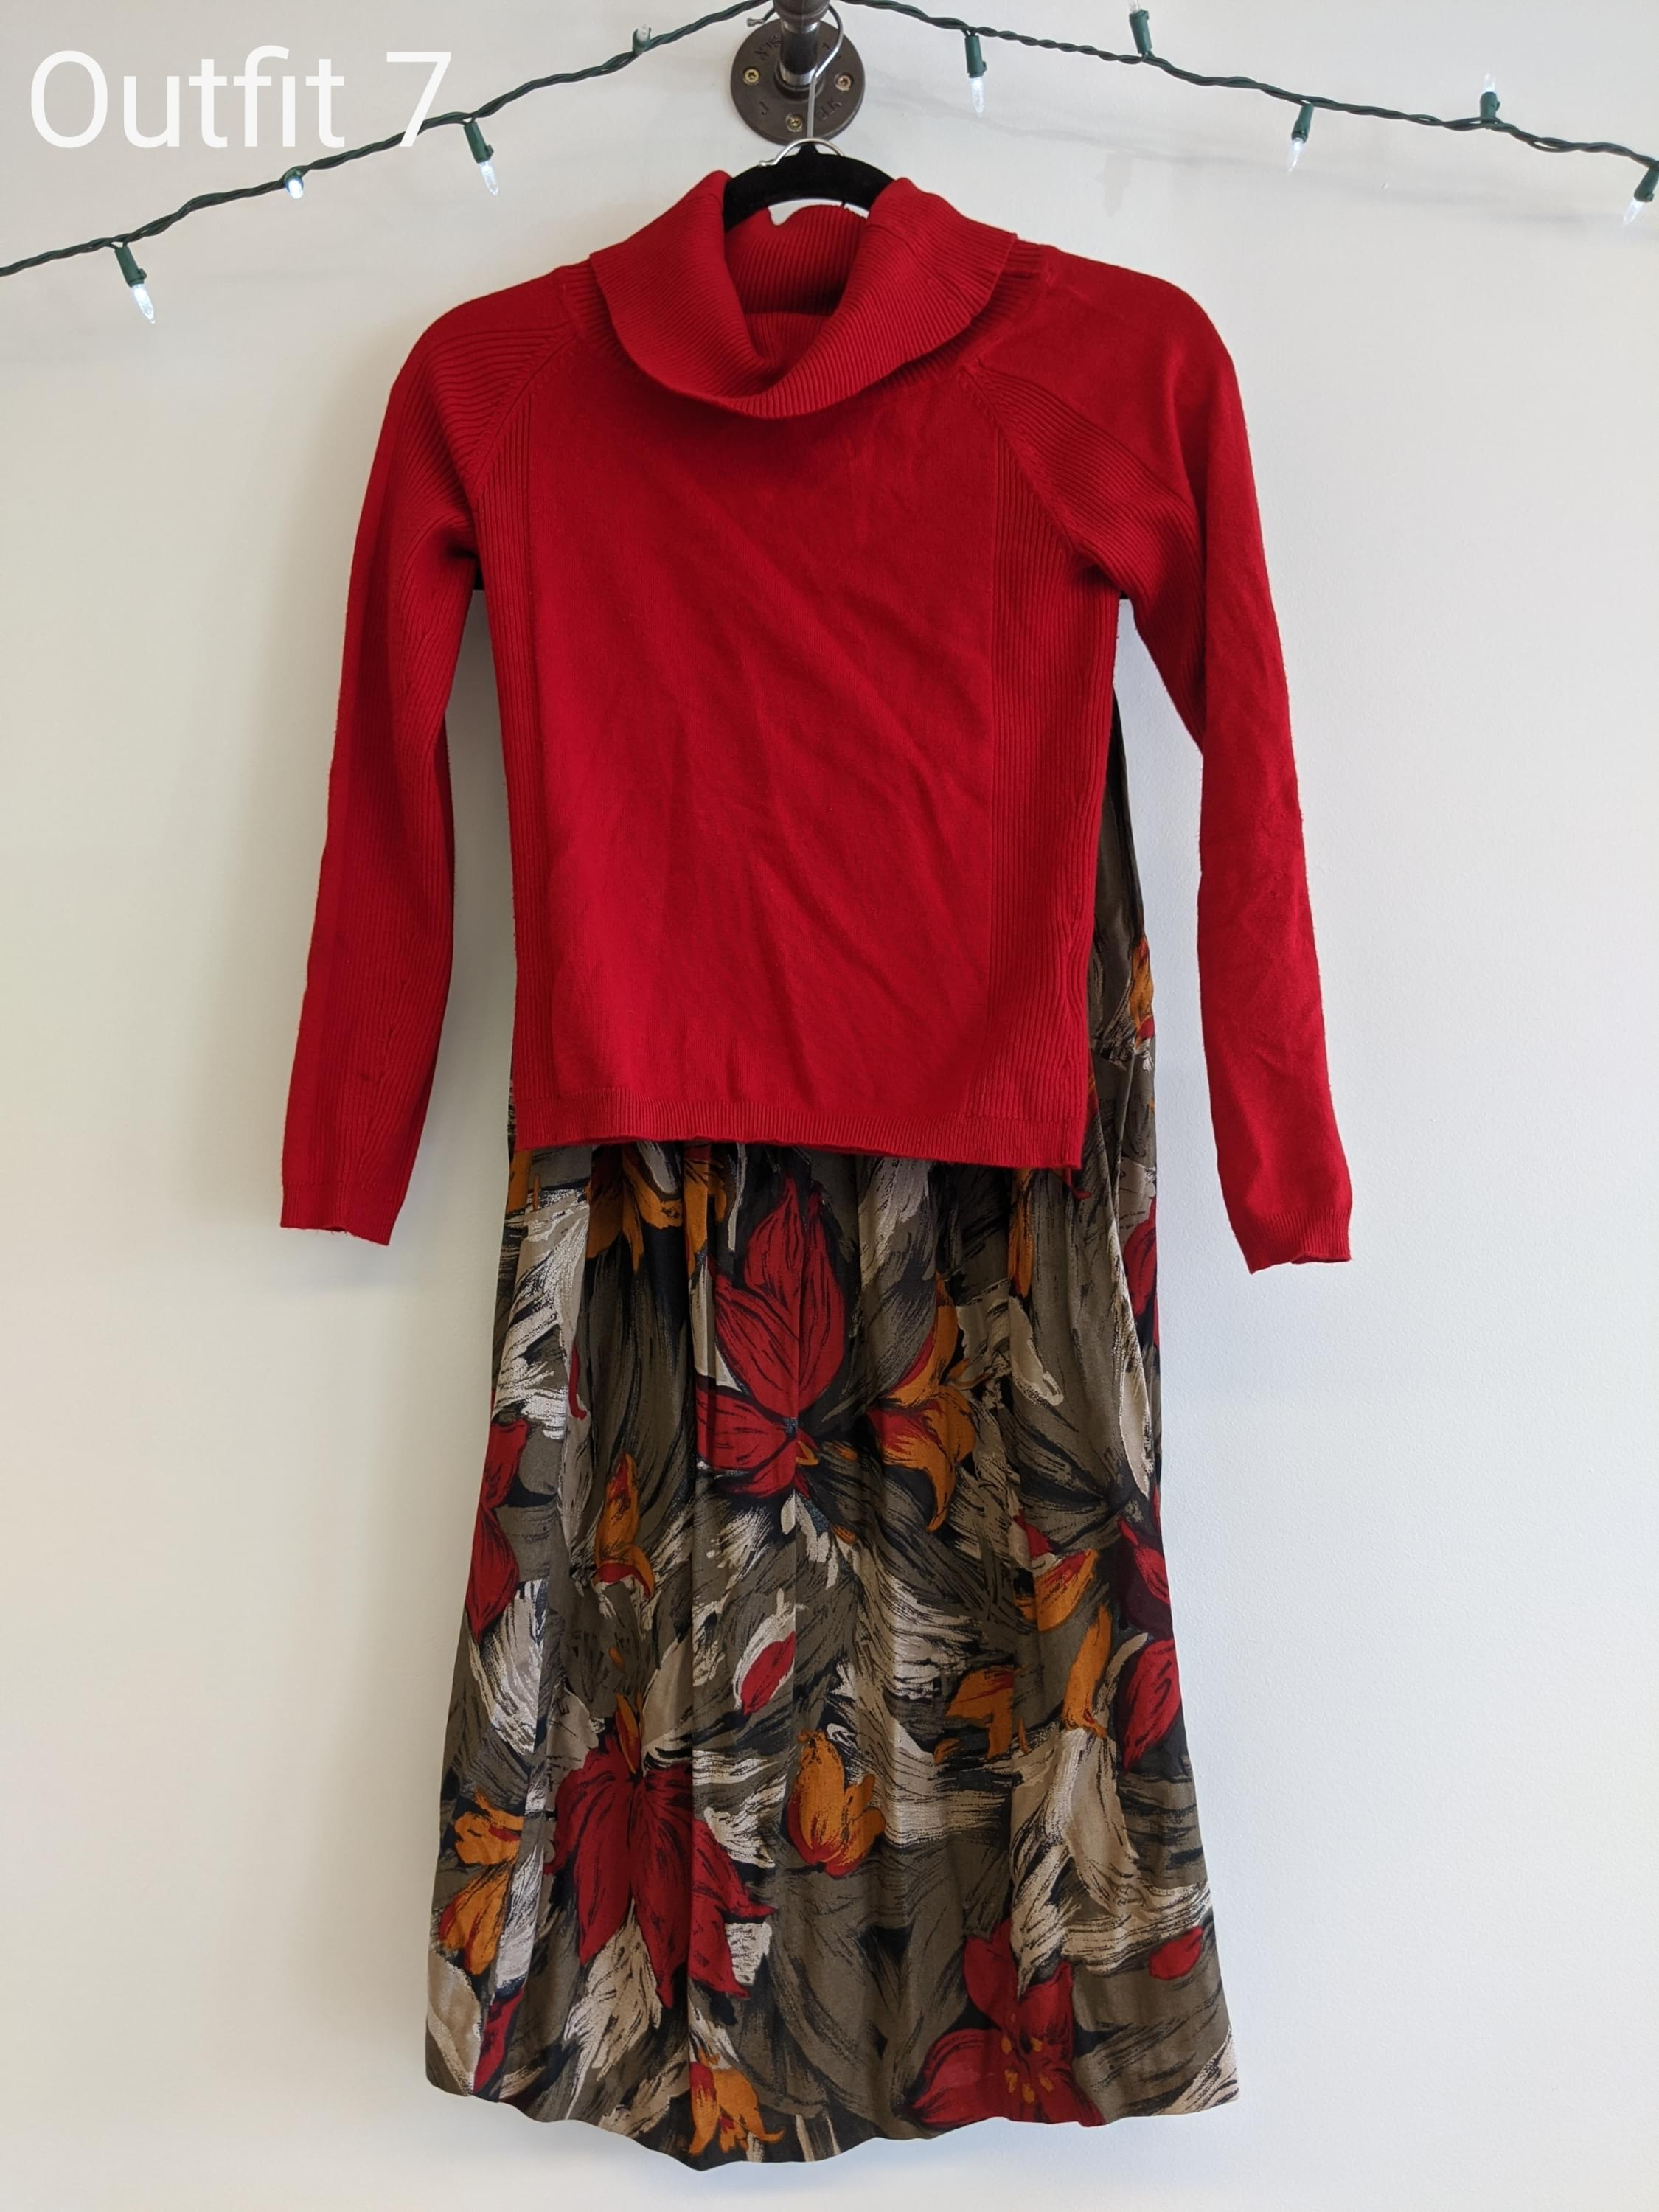 Red sweater and flower flowy skirt